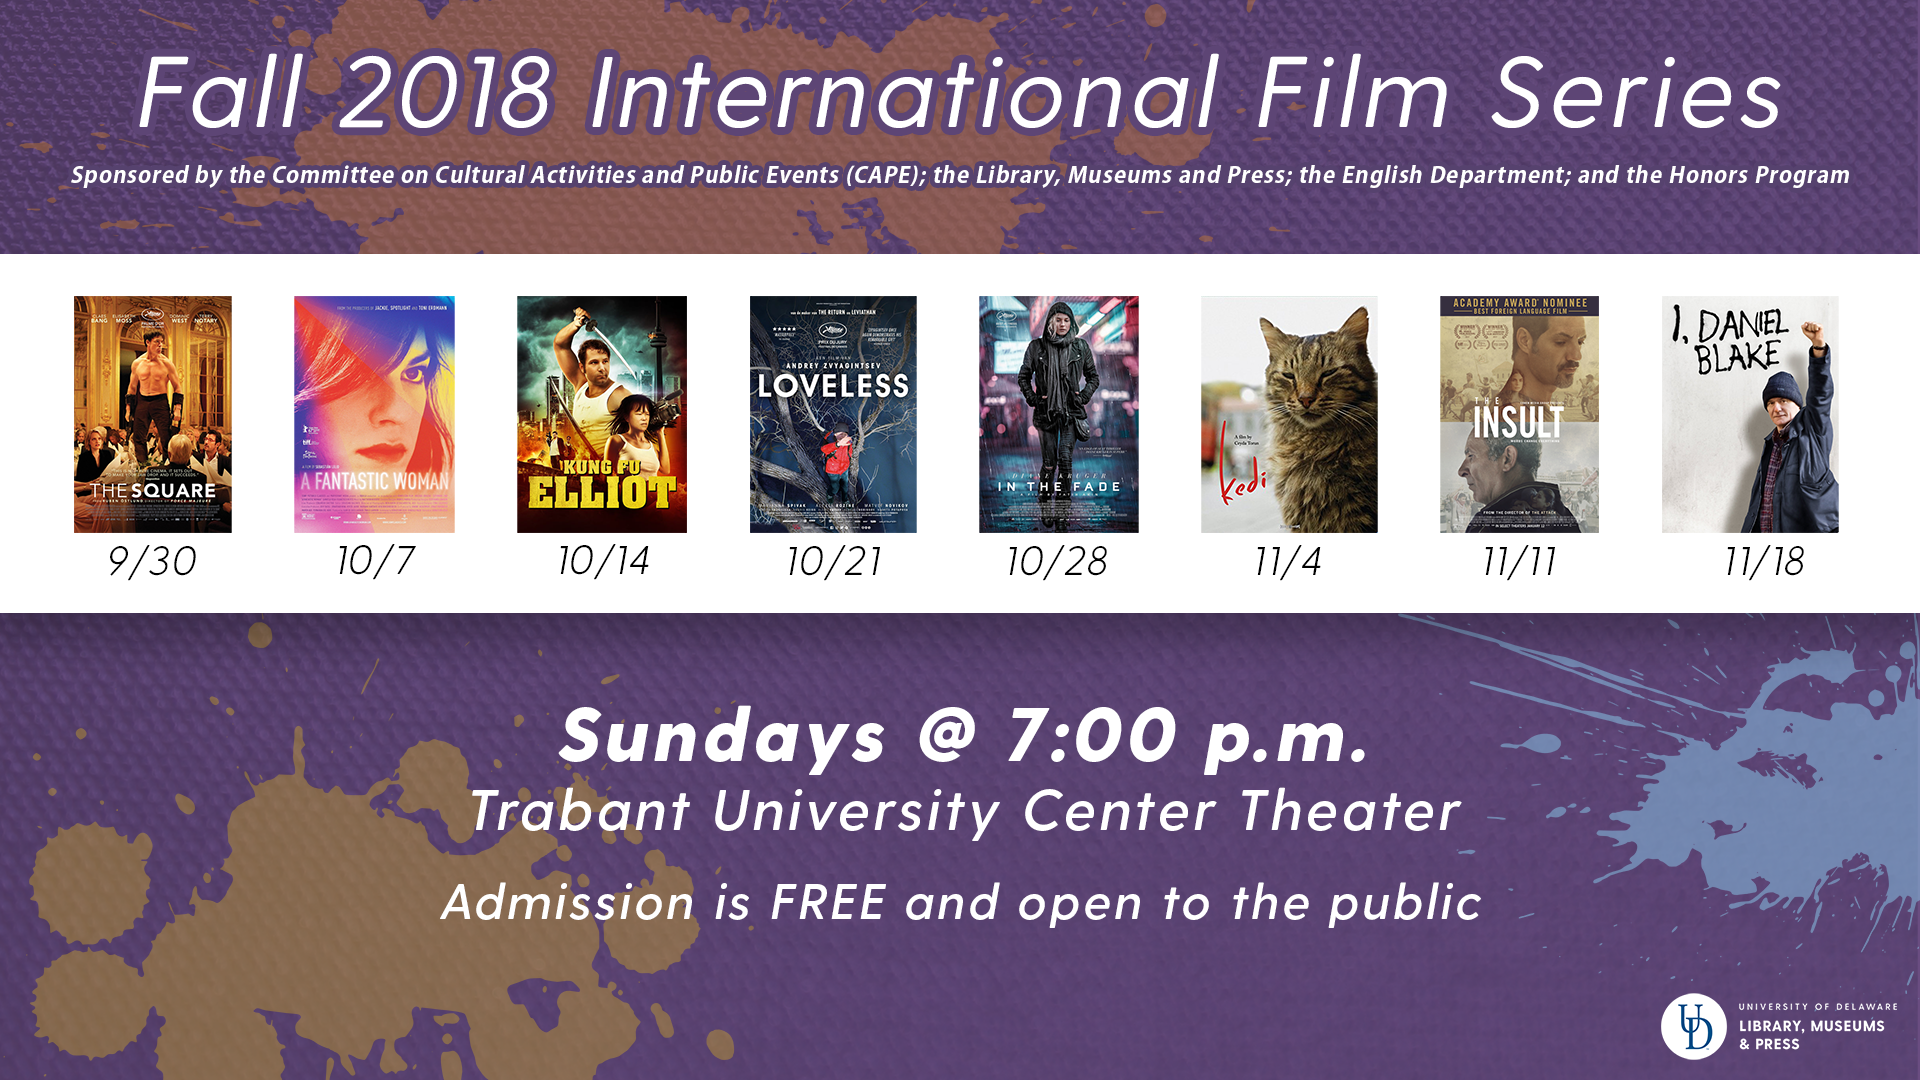 Fall 2018 International Film Series